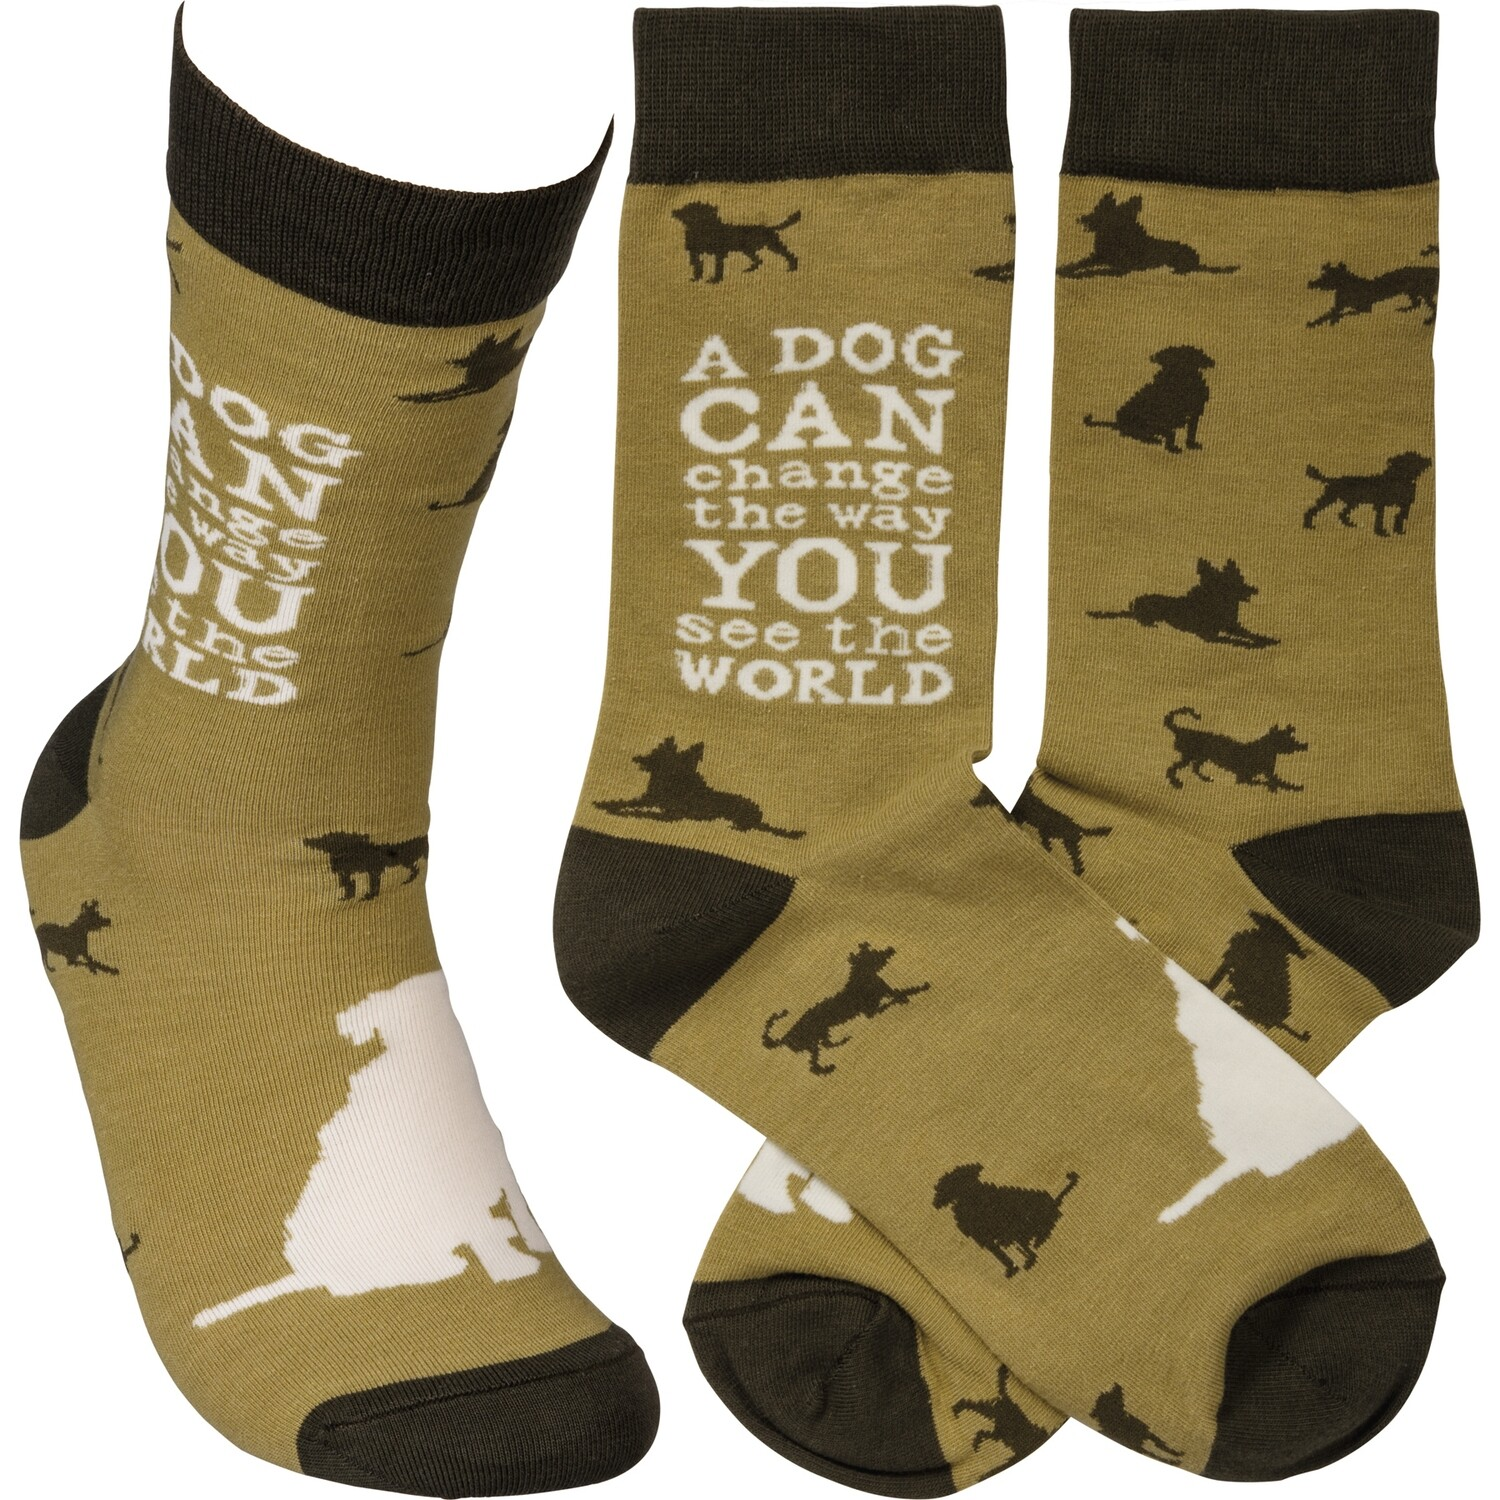 Socks: Dogs Change Way You See The World